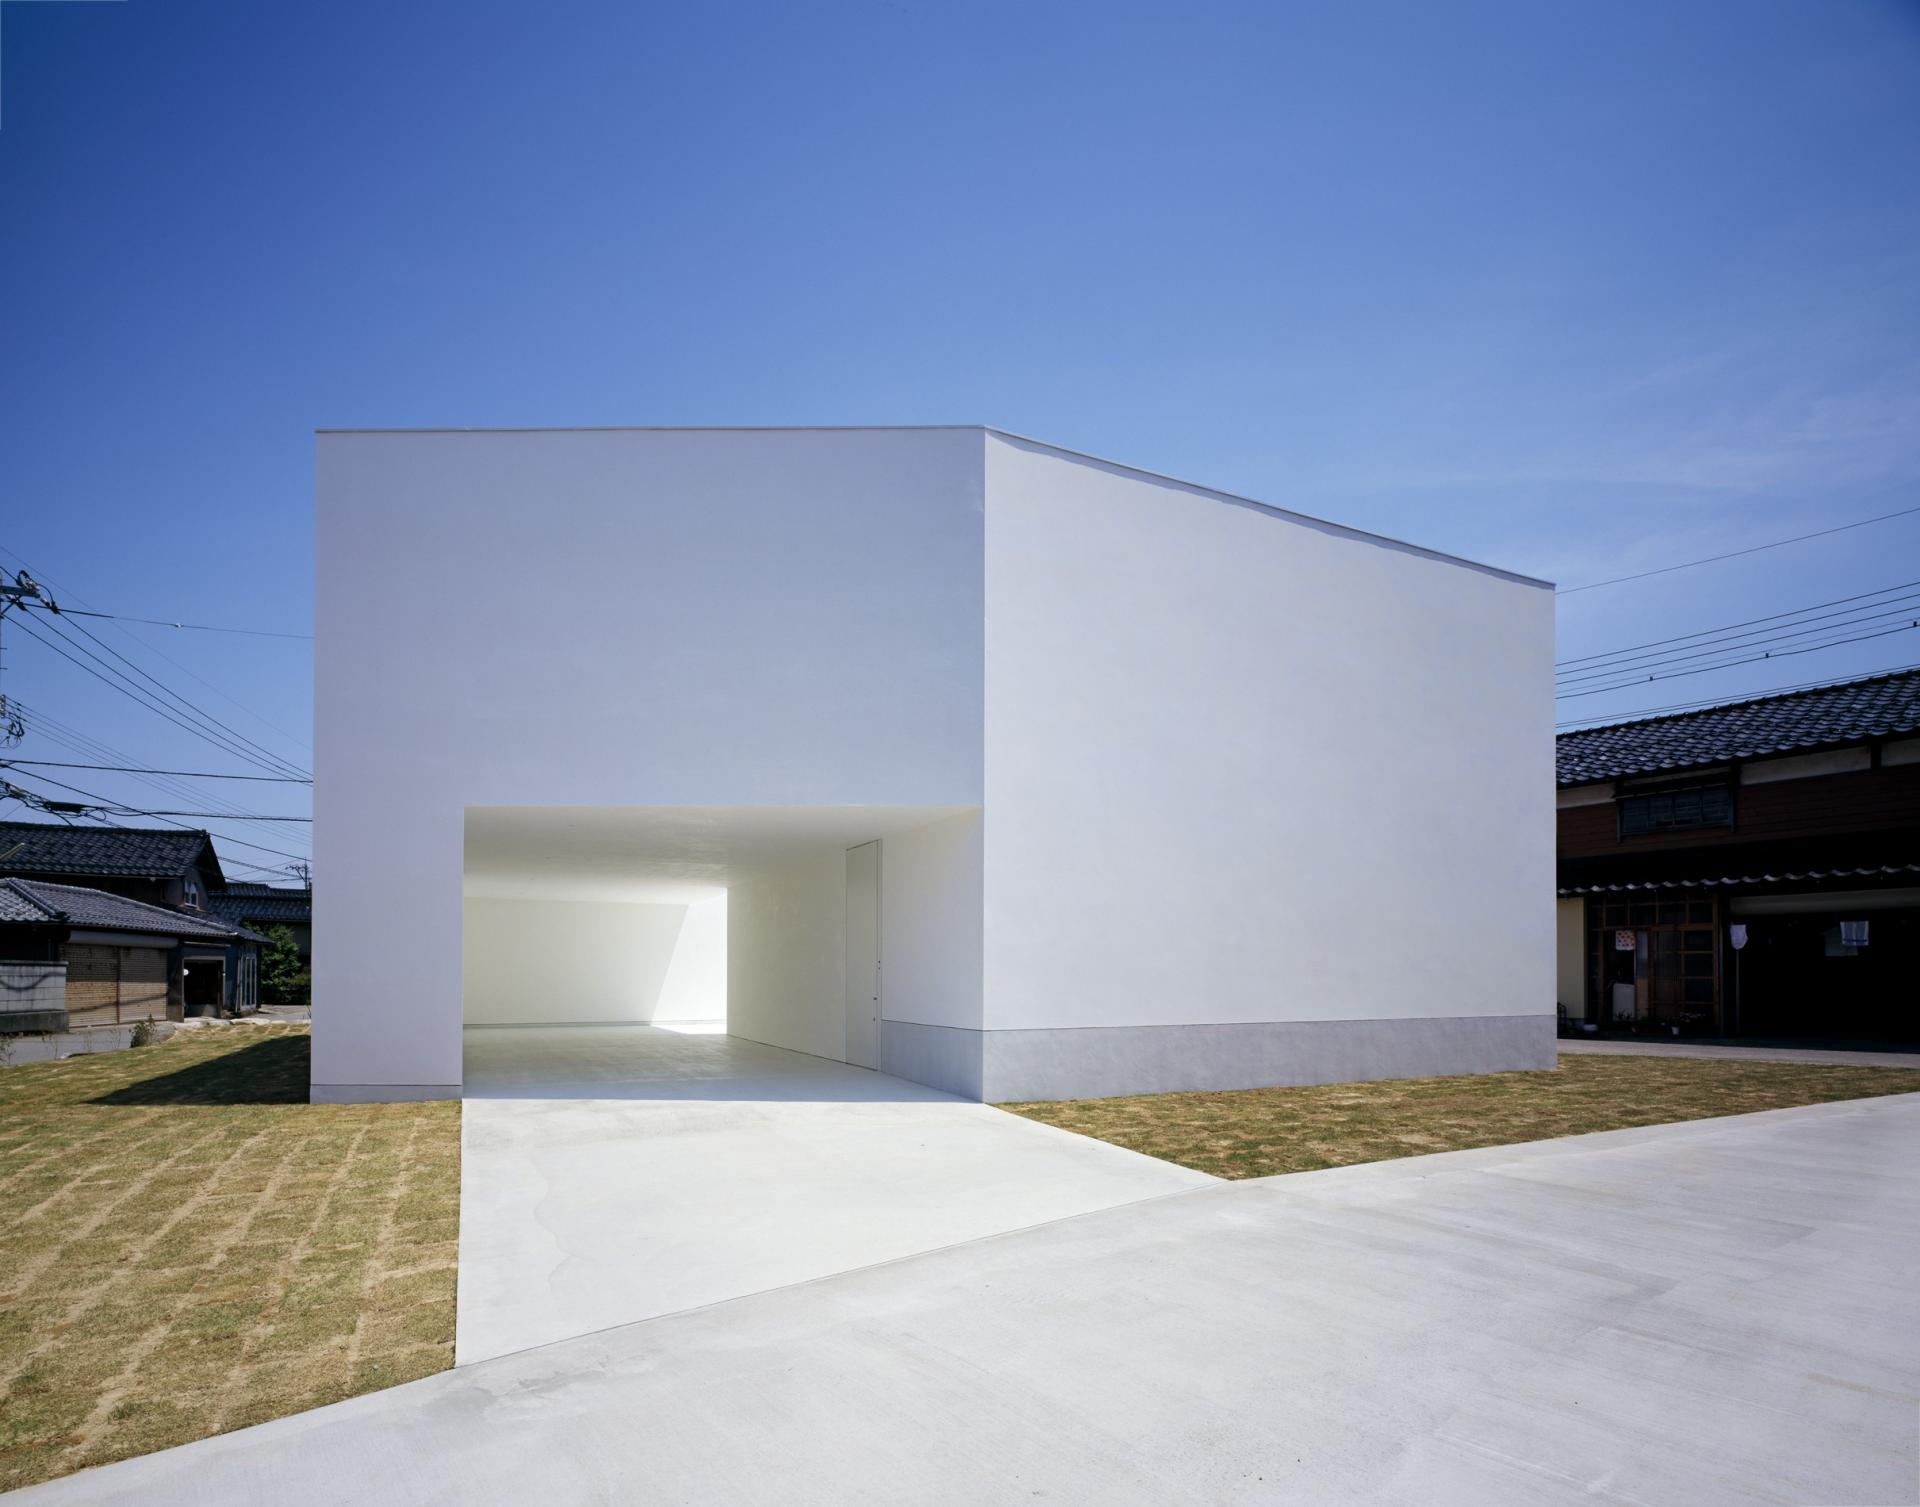 White cave house by takuro yamamoto architects for Minimal housing